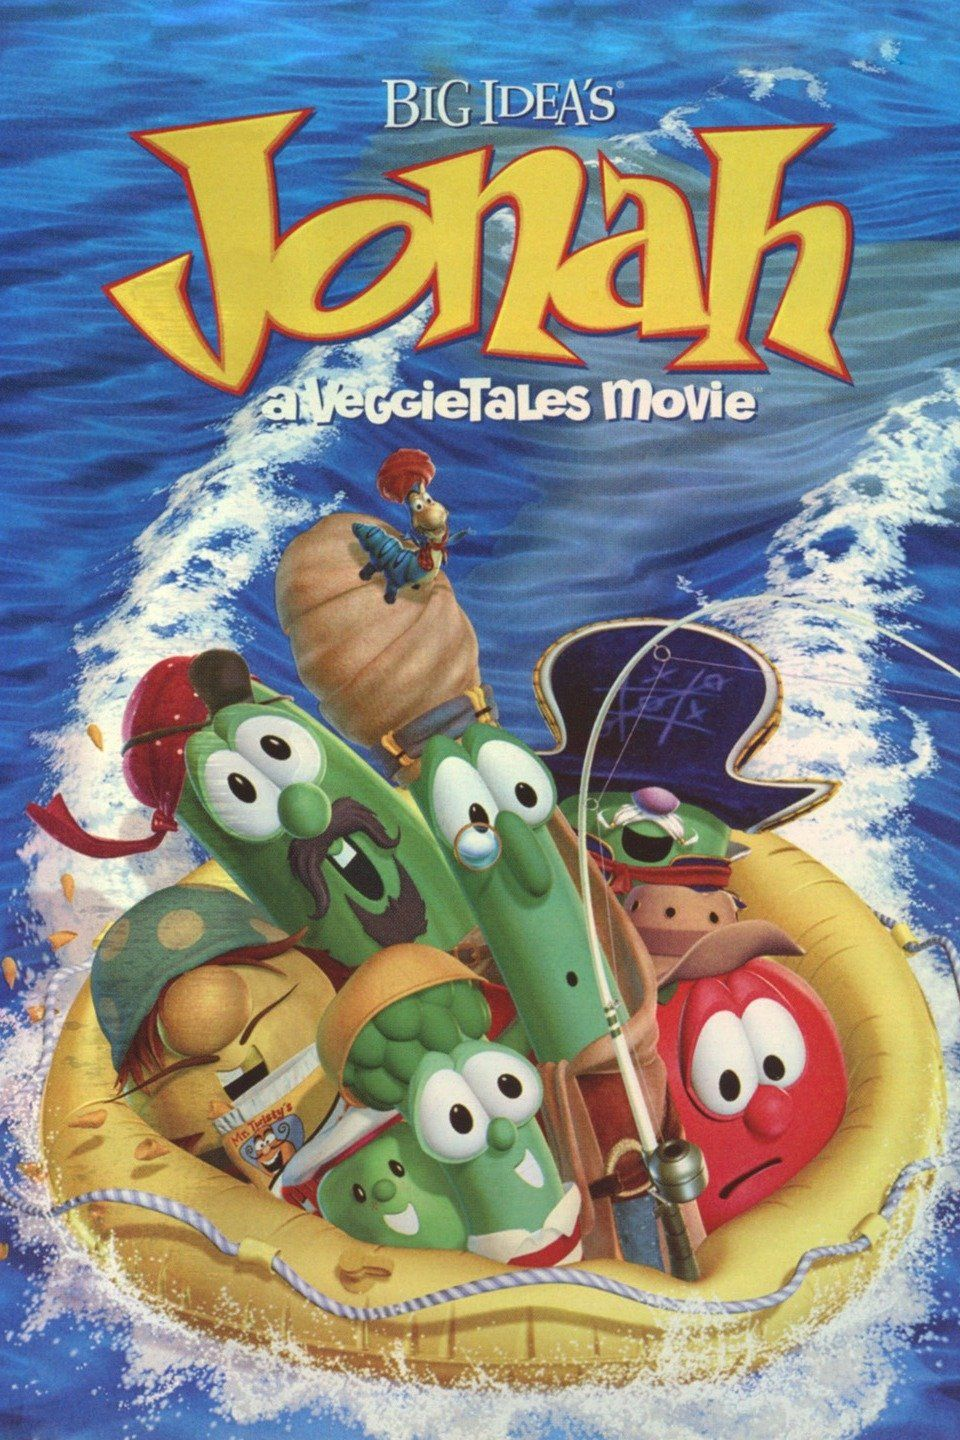 Animation Cartoon Full Movie 15 best bible movies - top biblical story films for the family